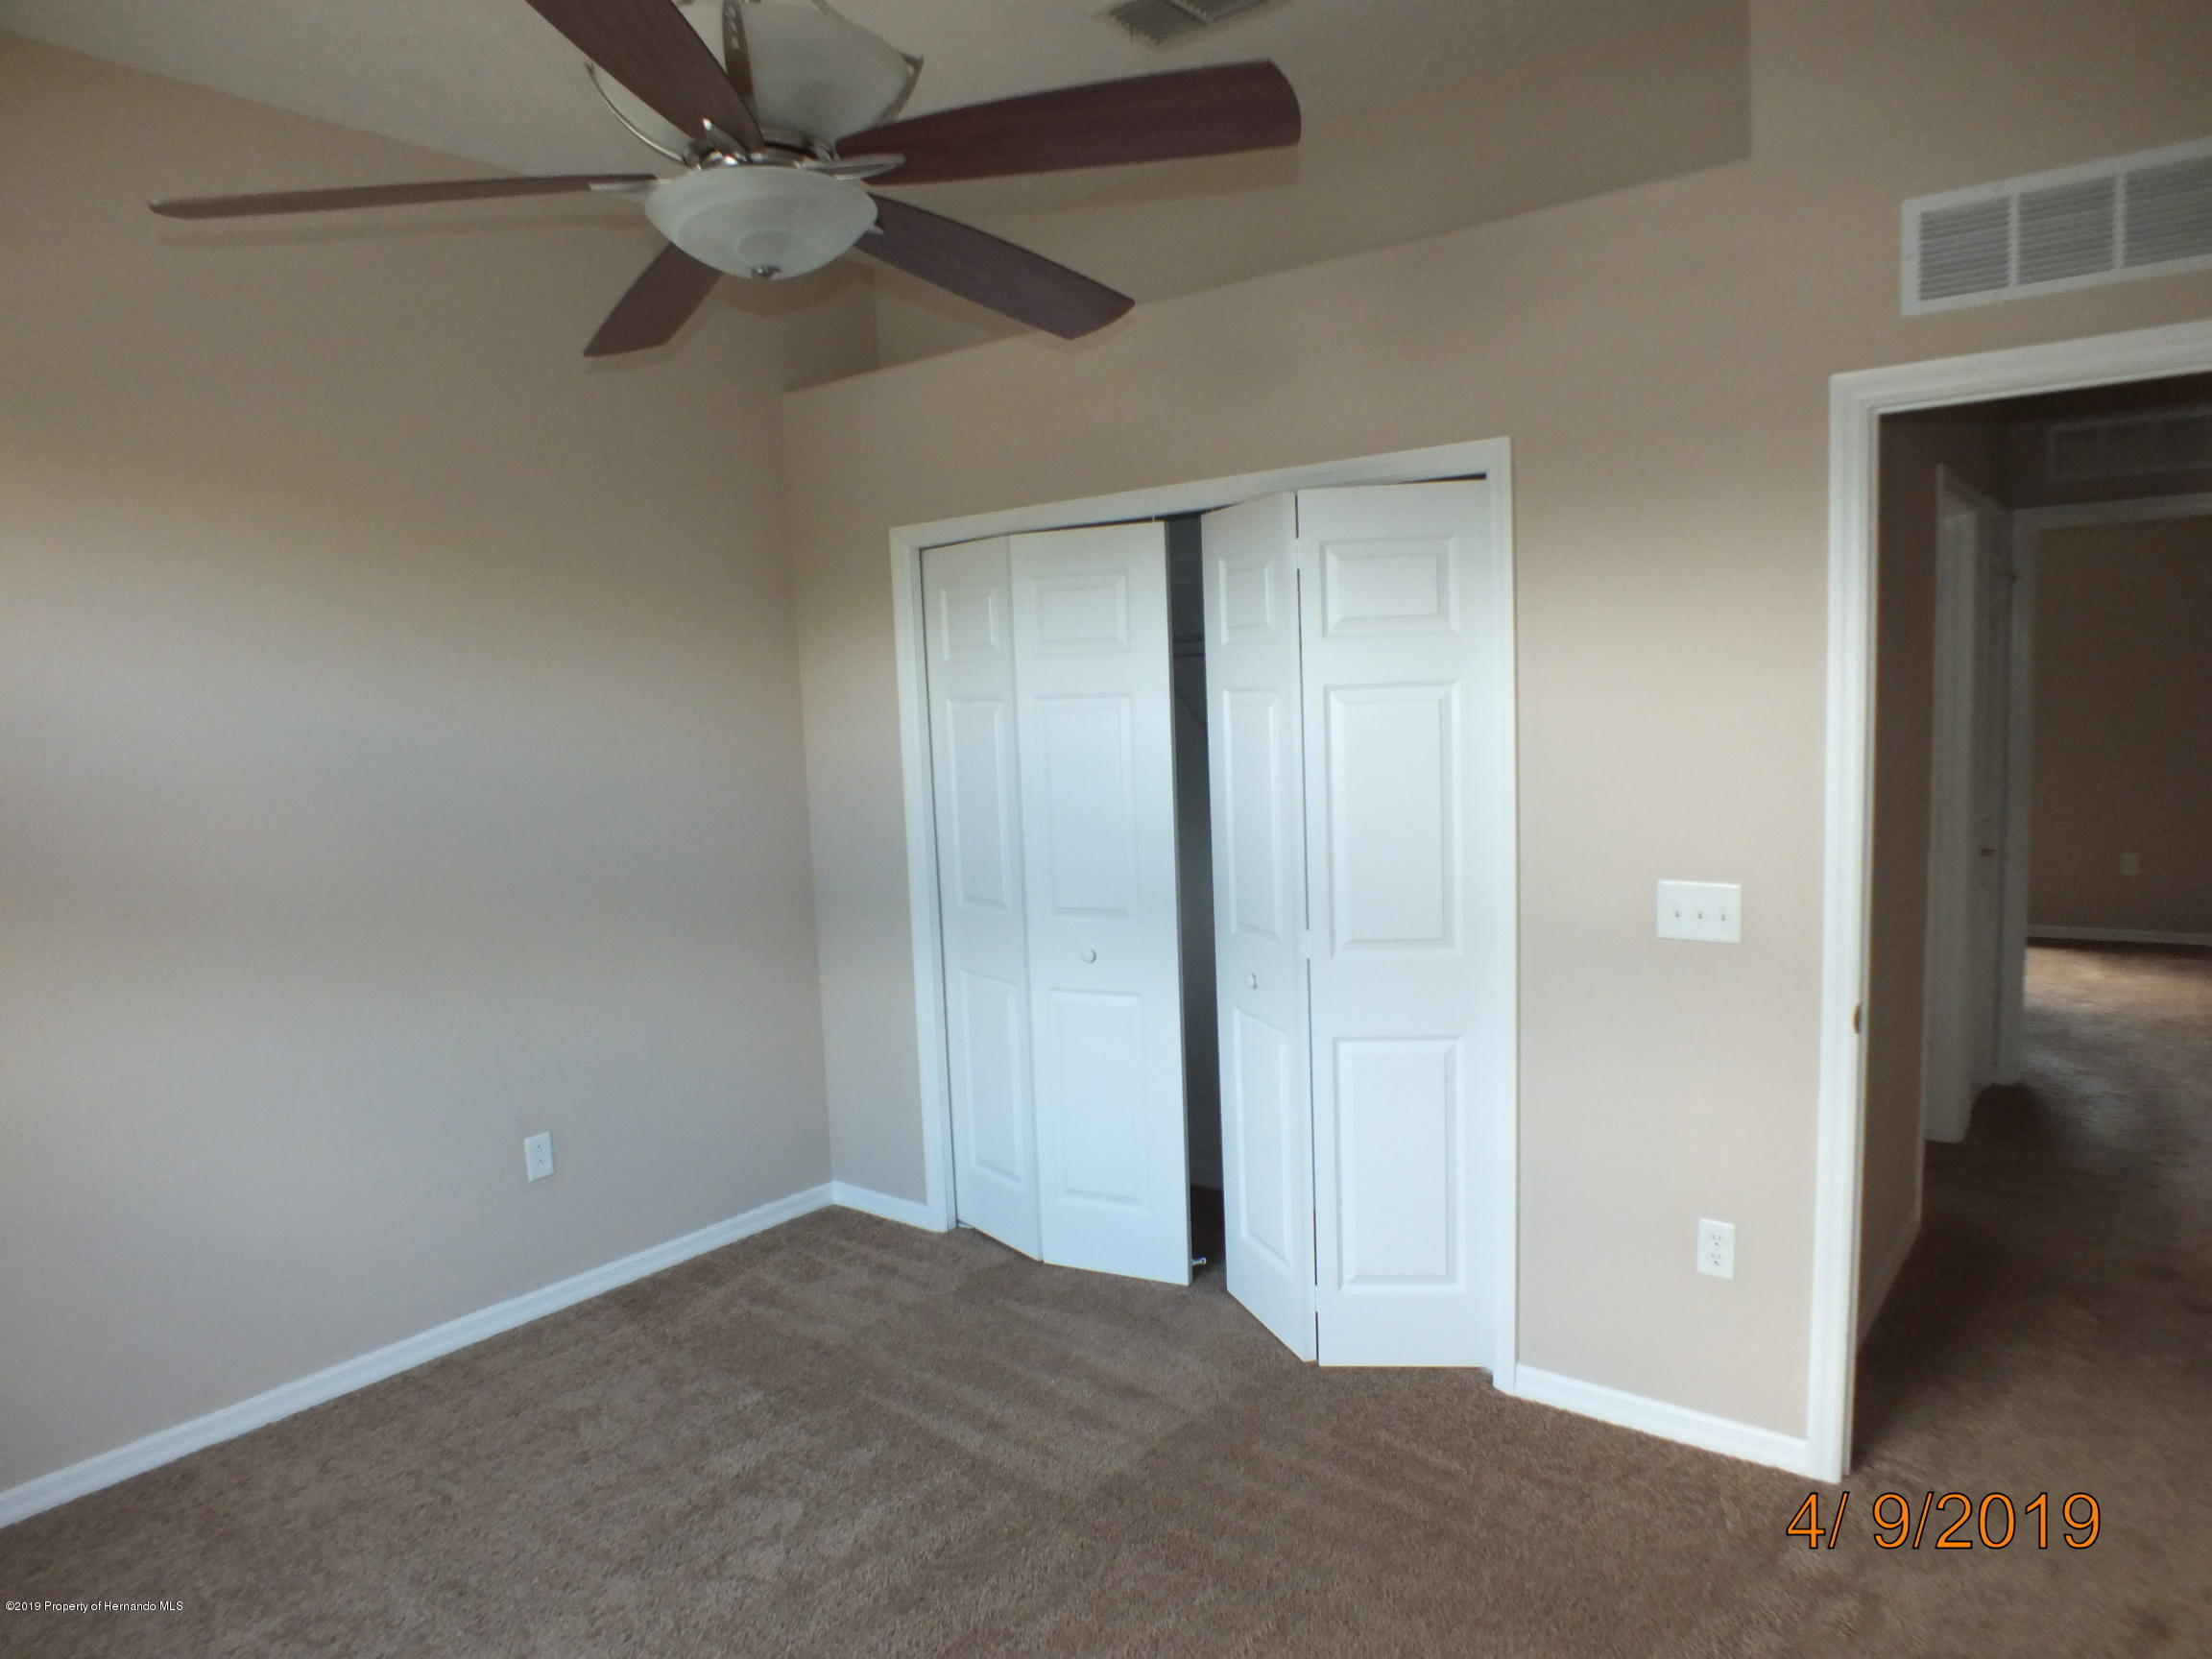 12630 Roseland Drive, New Port Richey, Florida 34654, 3 Bedrooms Bedrooms, ,2 BathroomsBathrooms,Residential,For Sale,Roseland,2200436